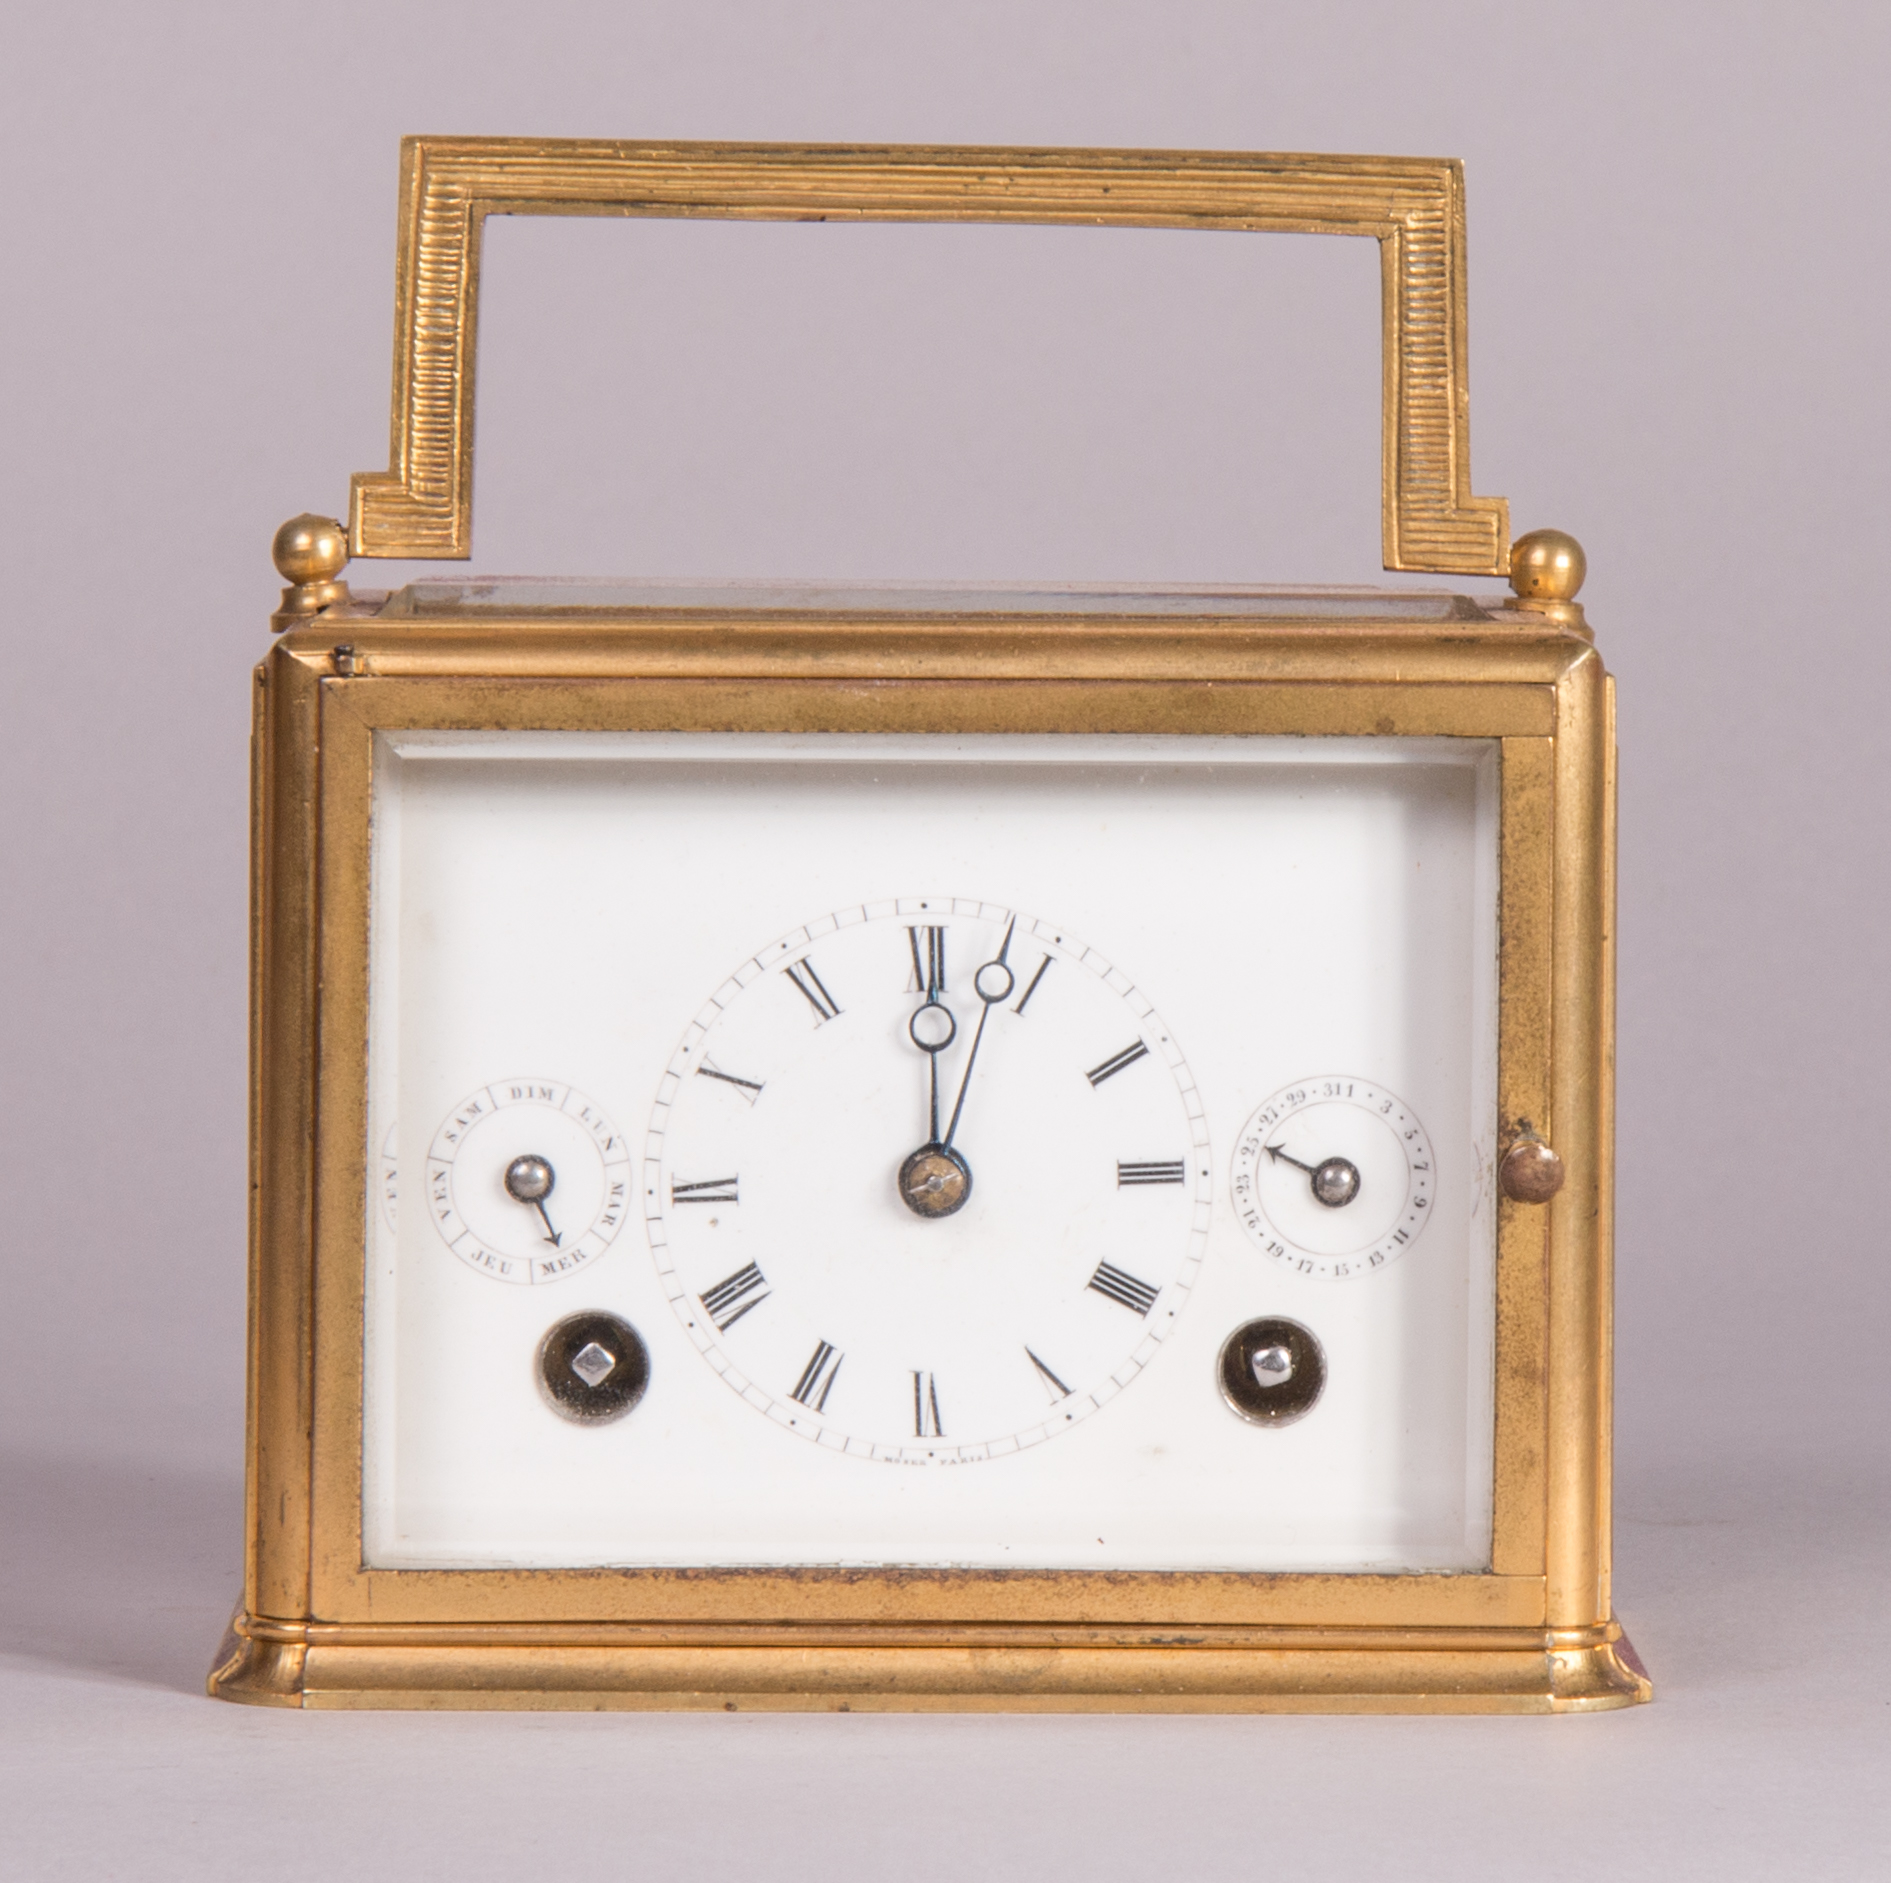 Carriage clock with original case by Heinrich Moser, c. 1850.